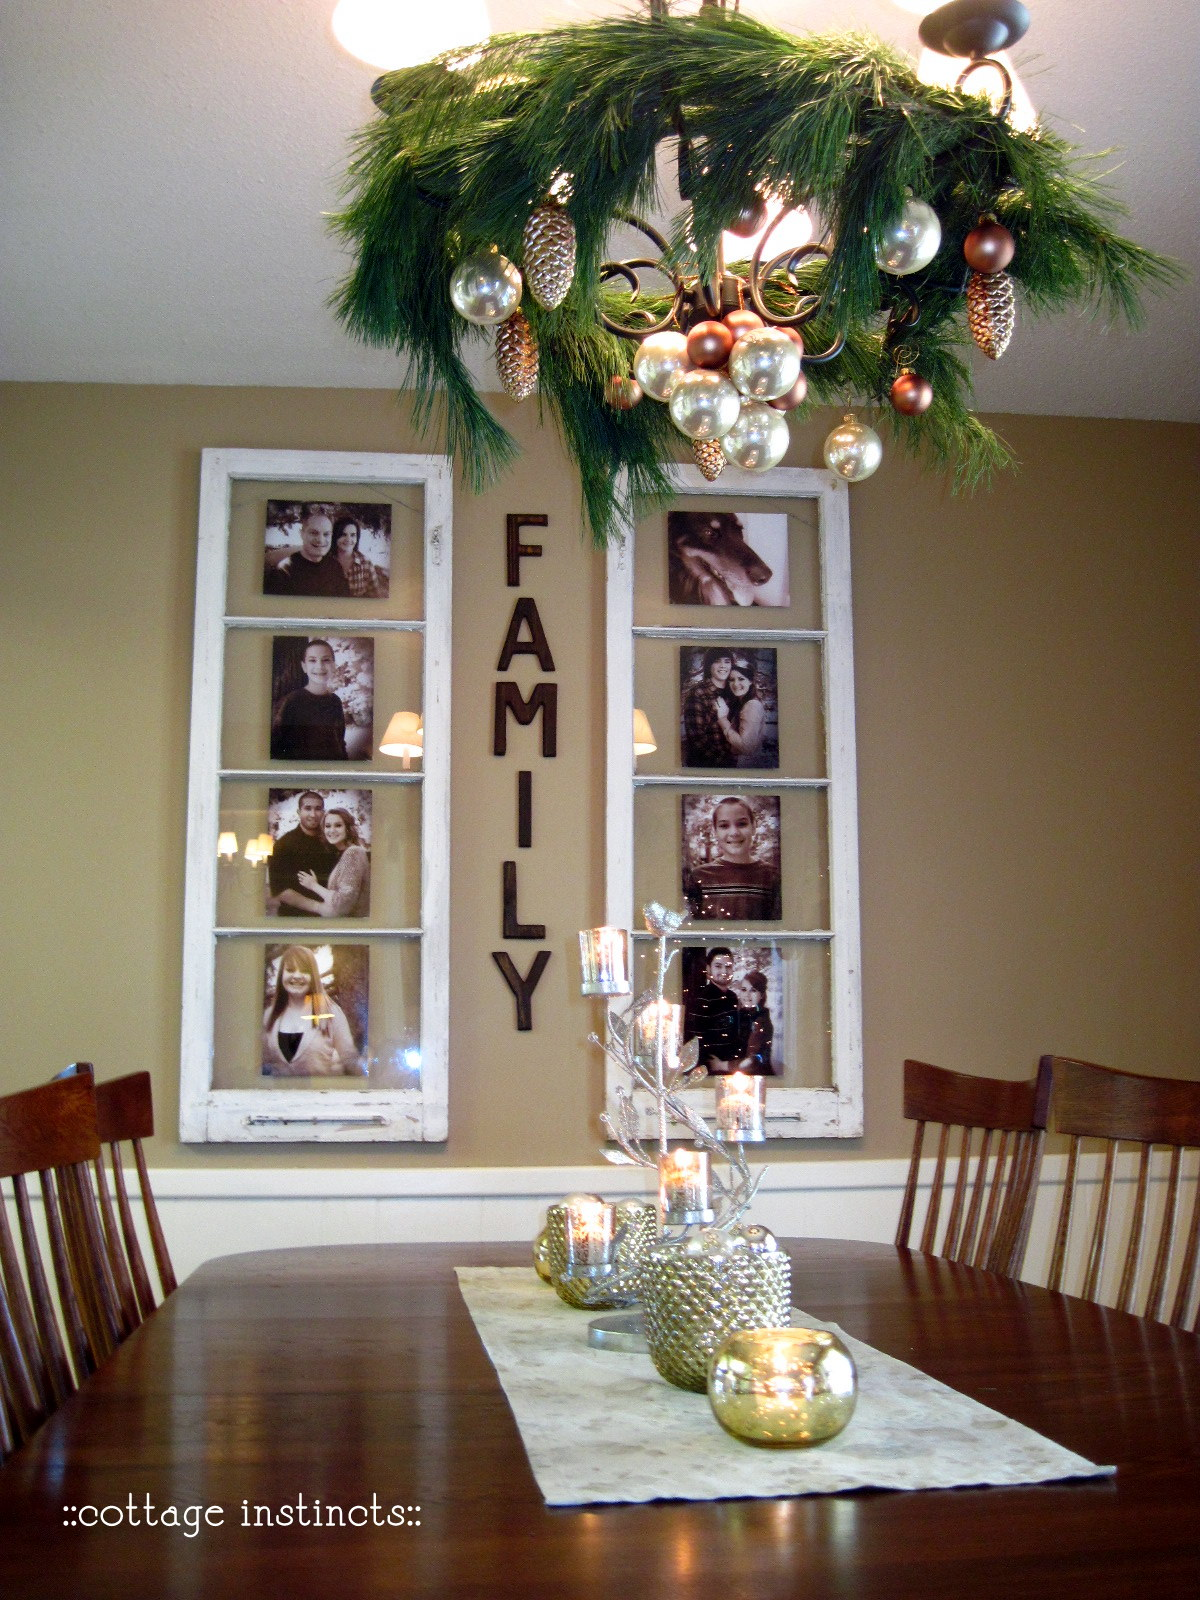 Cottage instincts what to do with old windows for What to do with old frames